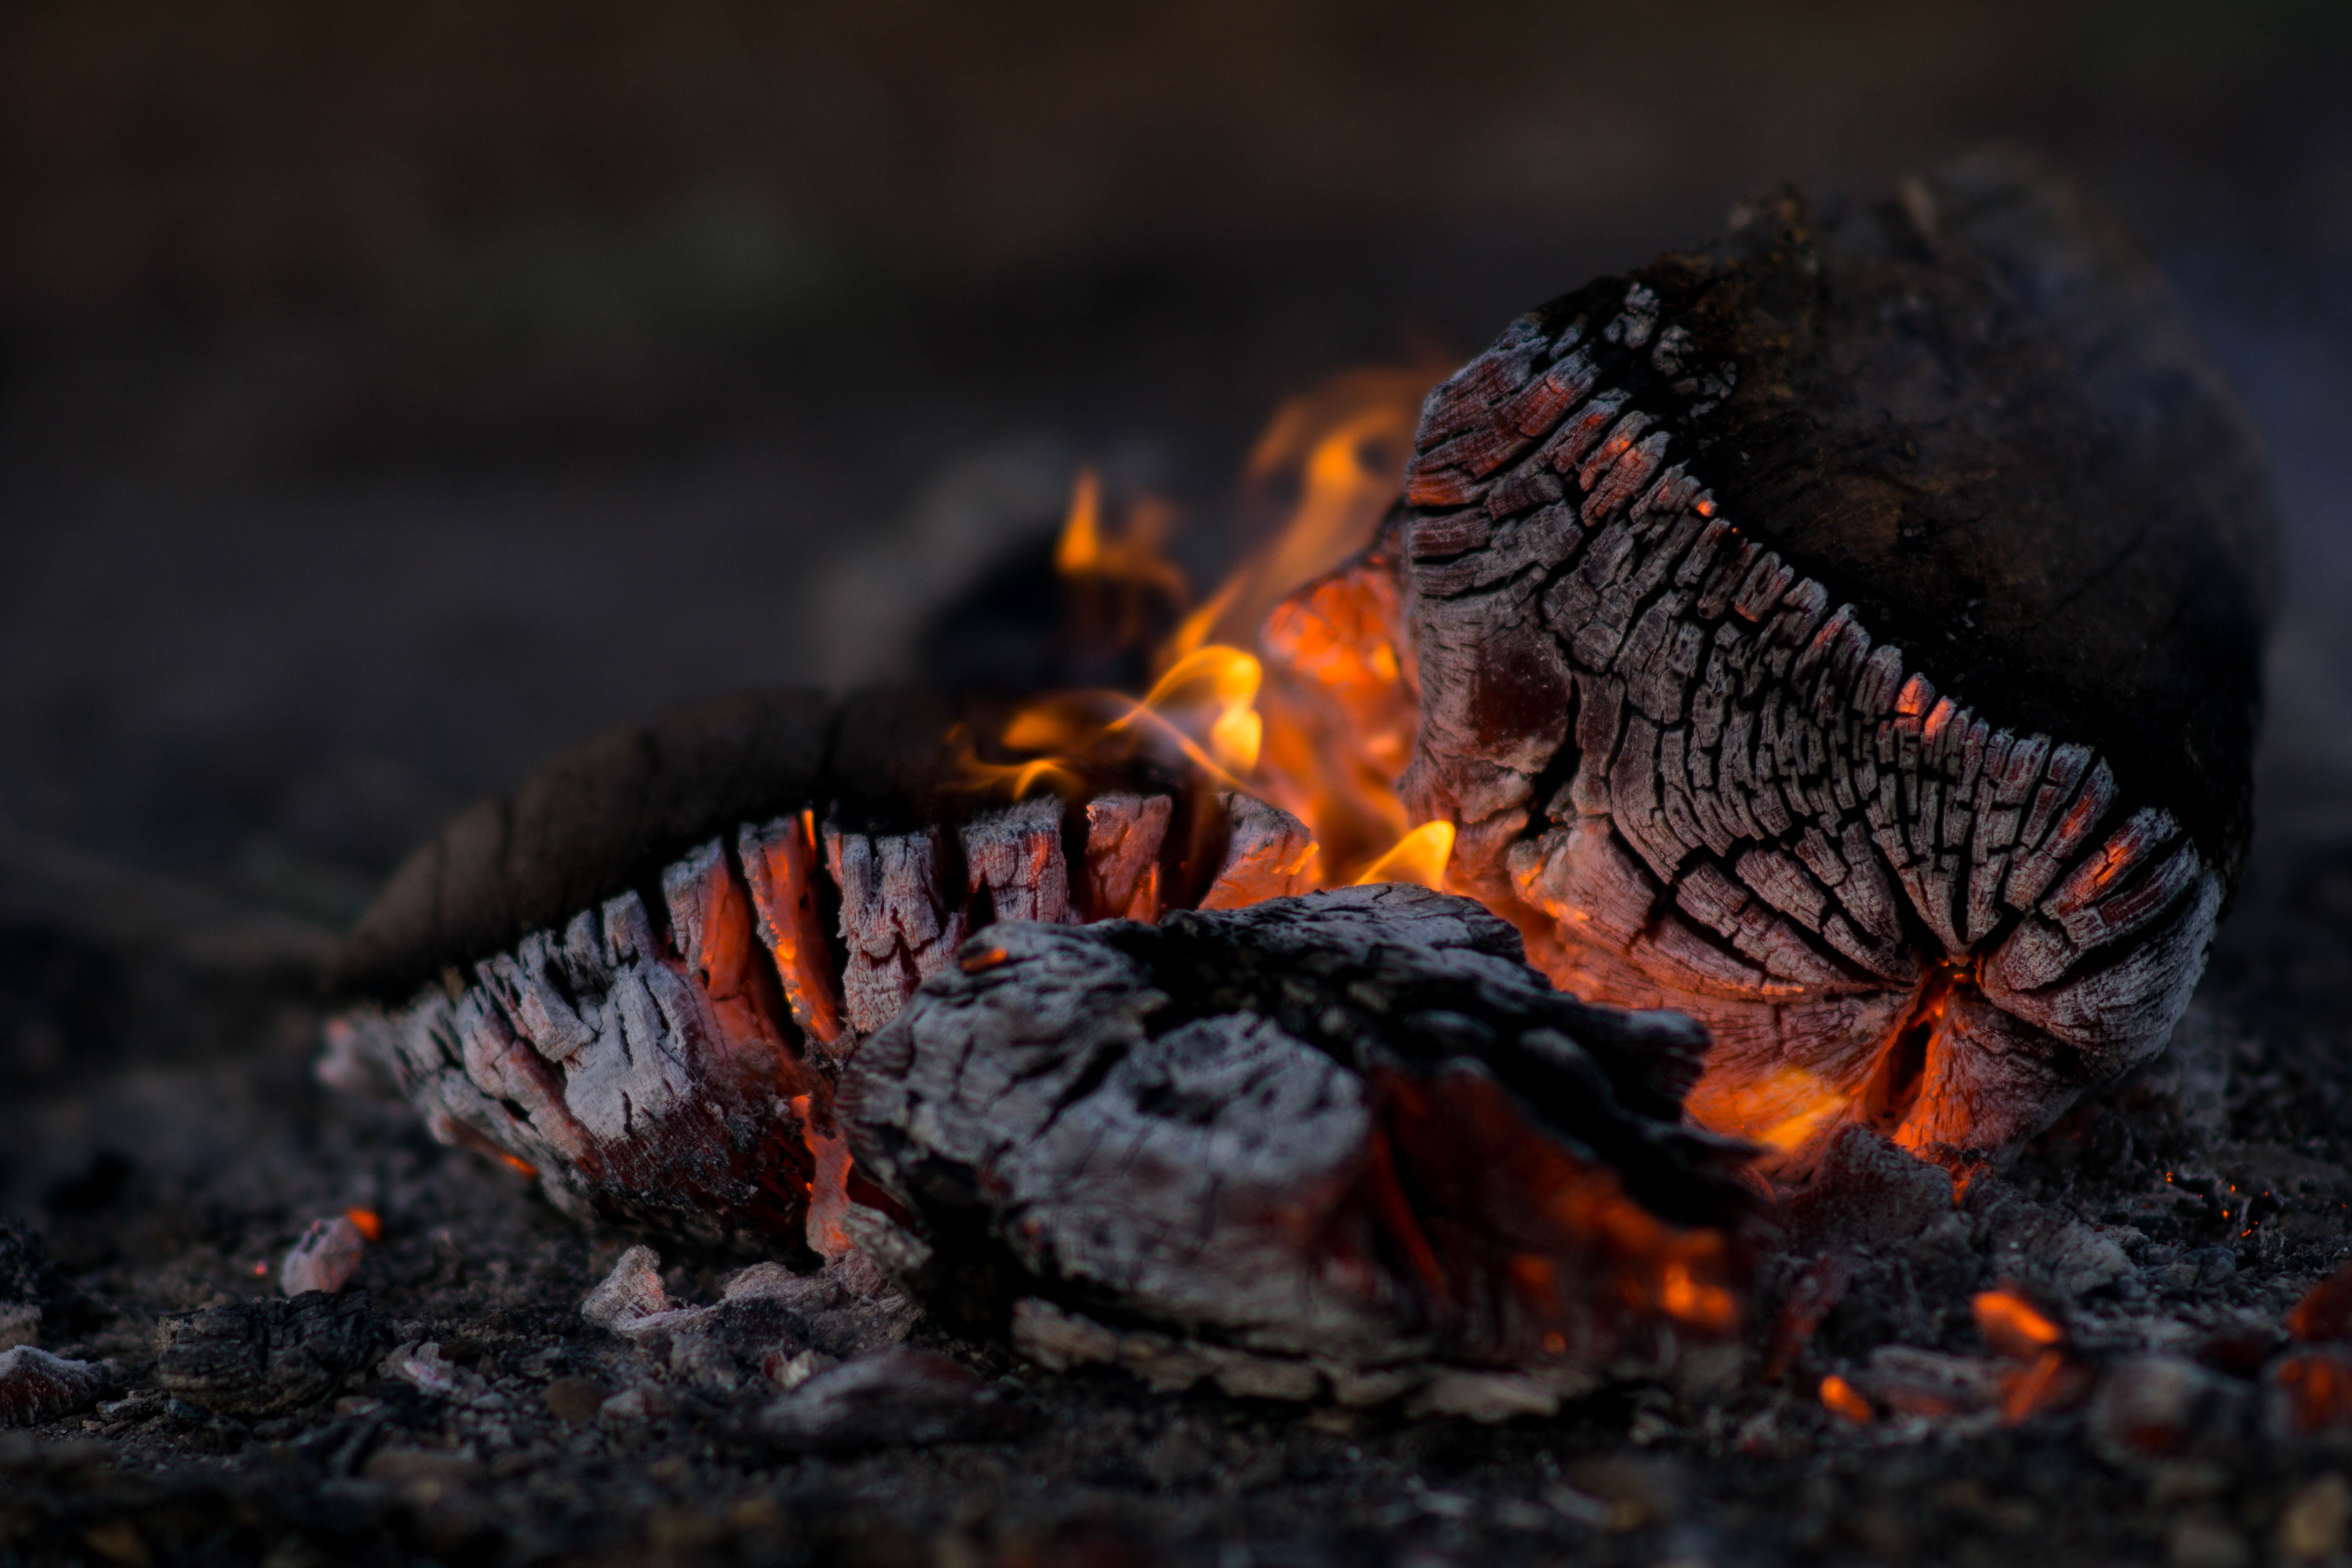 A burning log turns to charcoal.